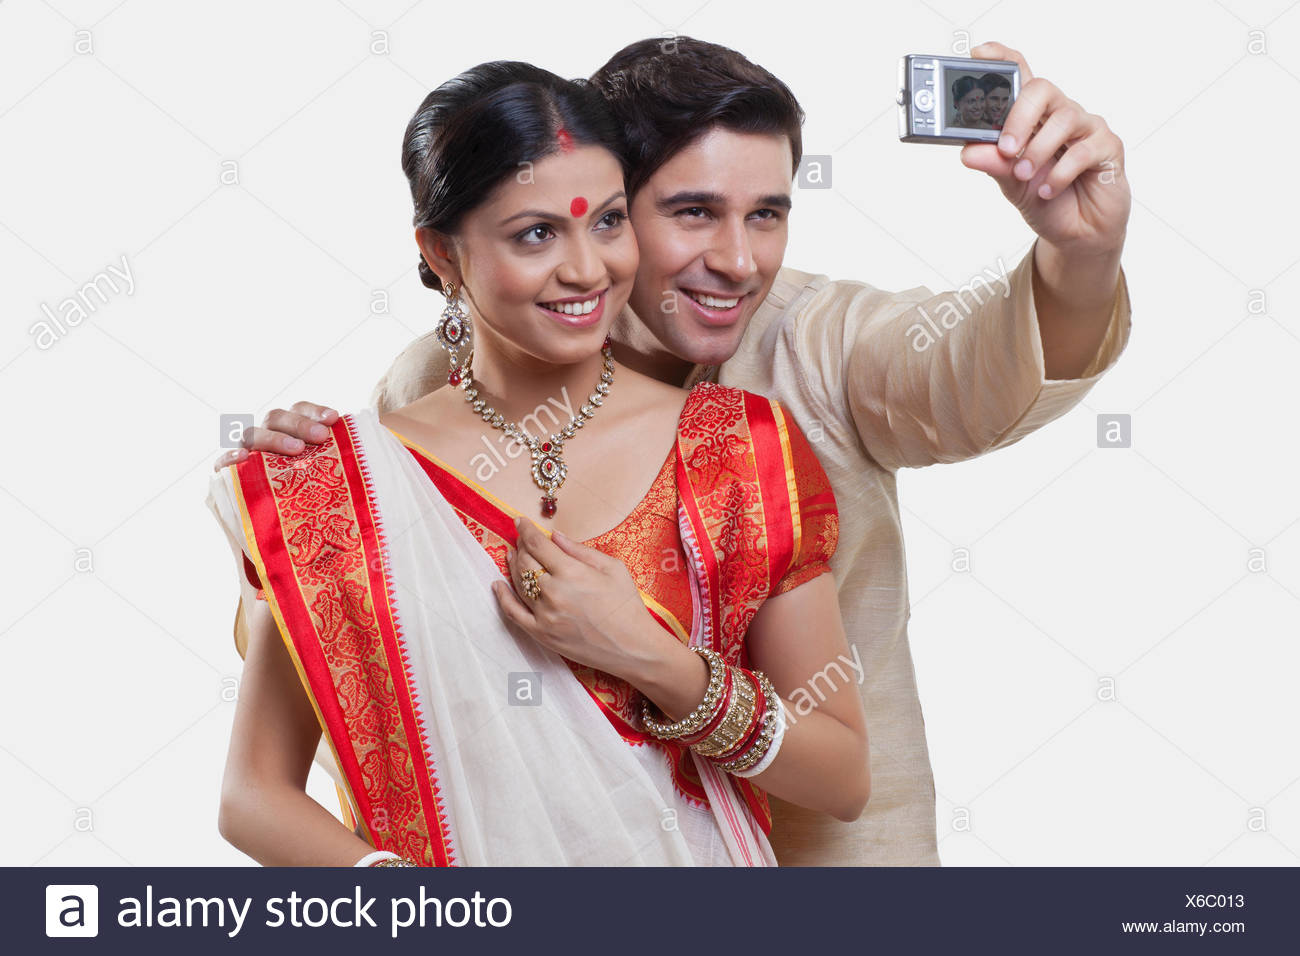 Bengali couple taking a self portrait stock image